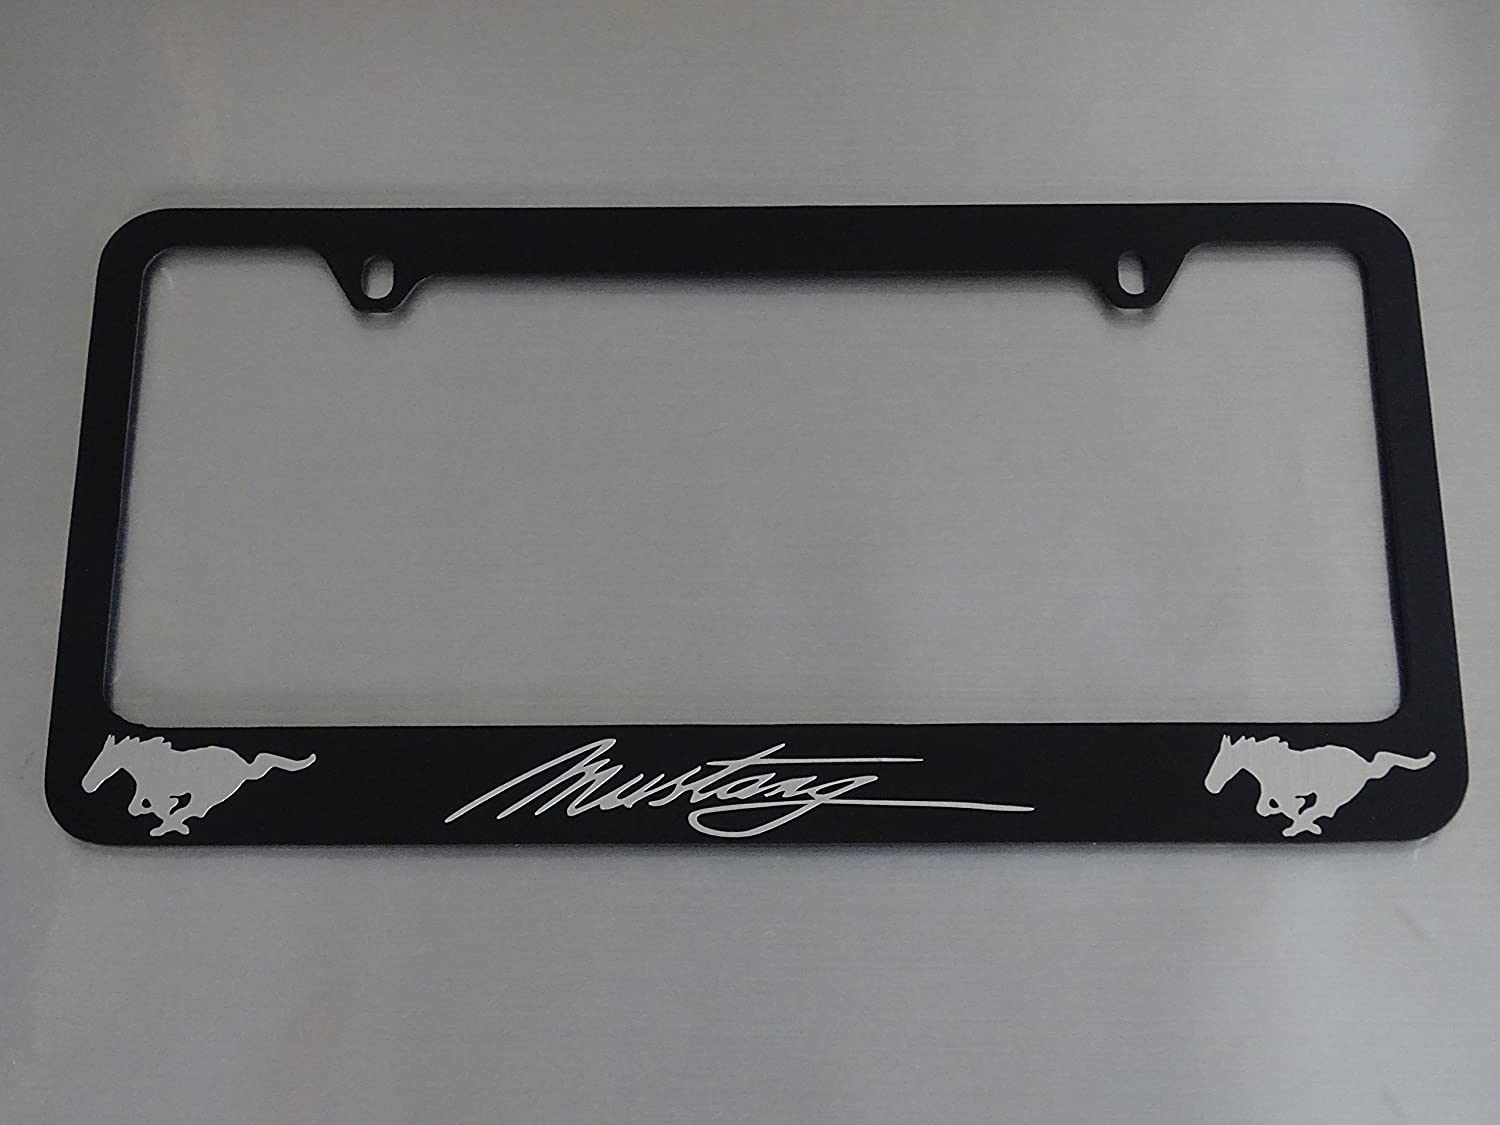 Ford Mustang license plate frame Brushed aluminum text glossy black metal